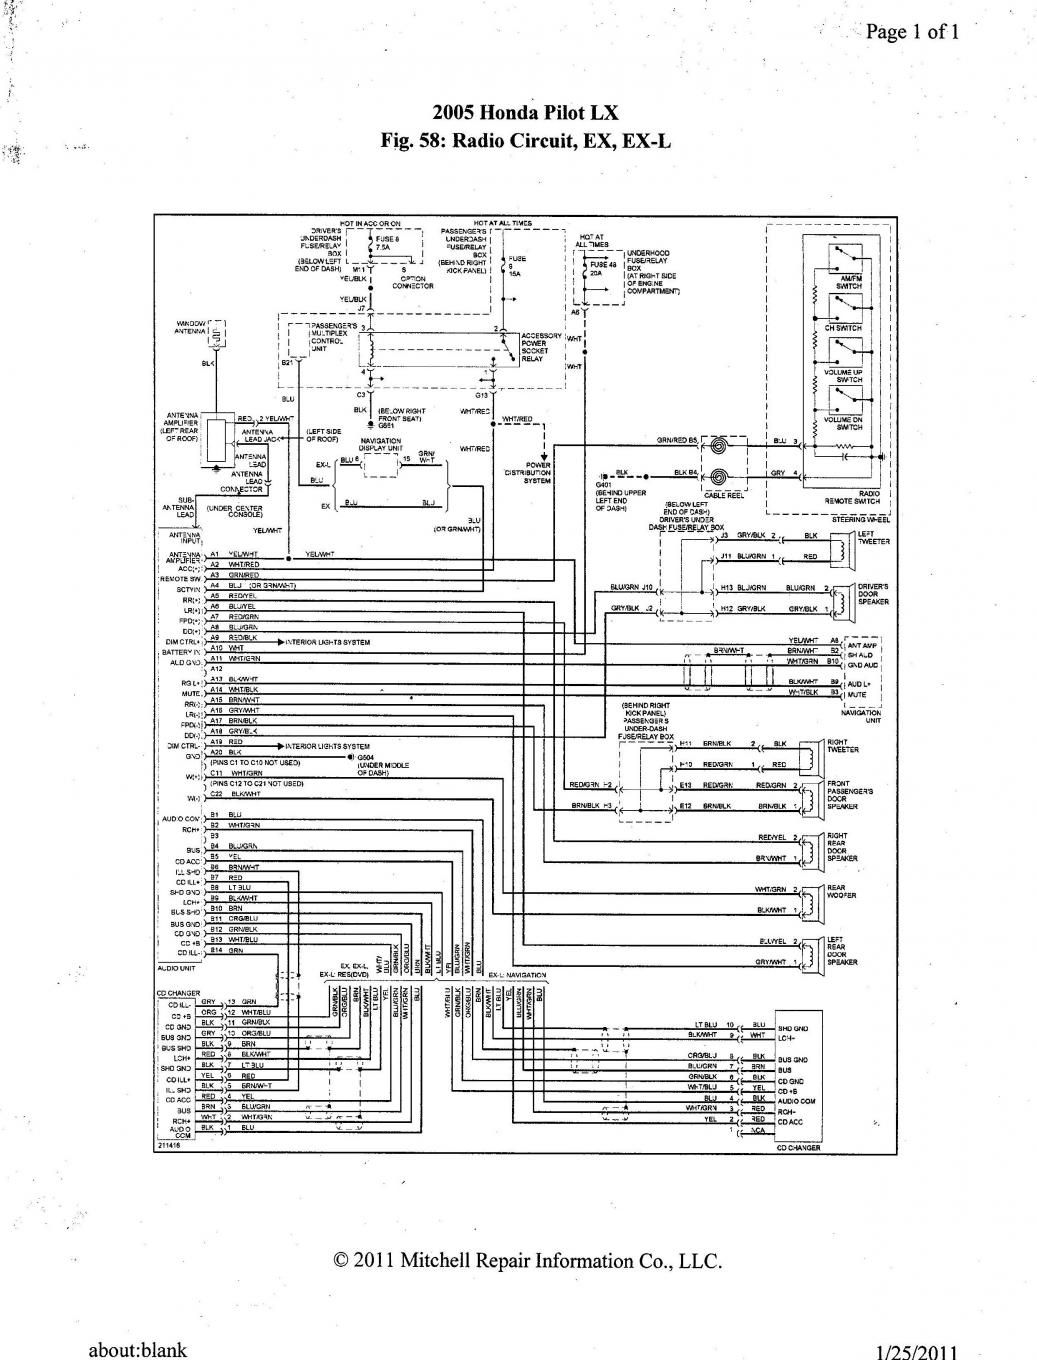 Stereo Wiring Diagram Honda Accord